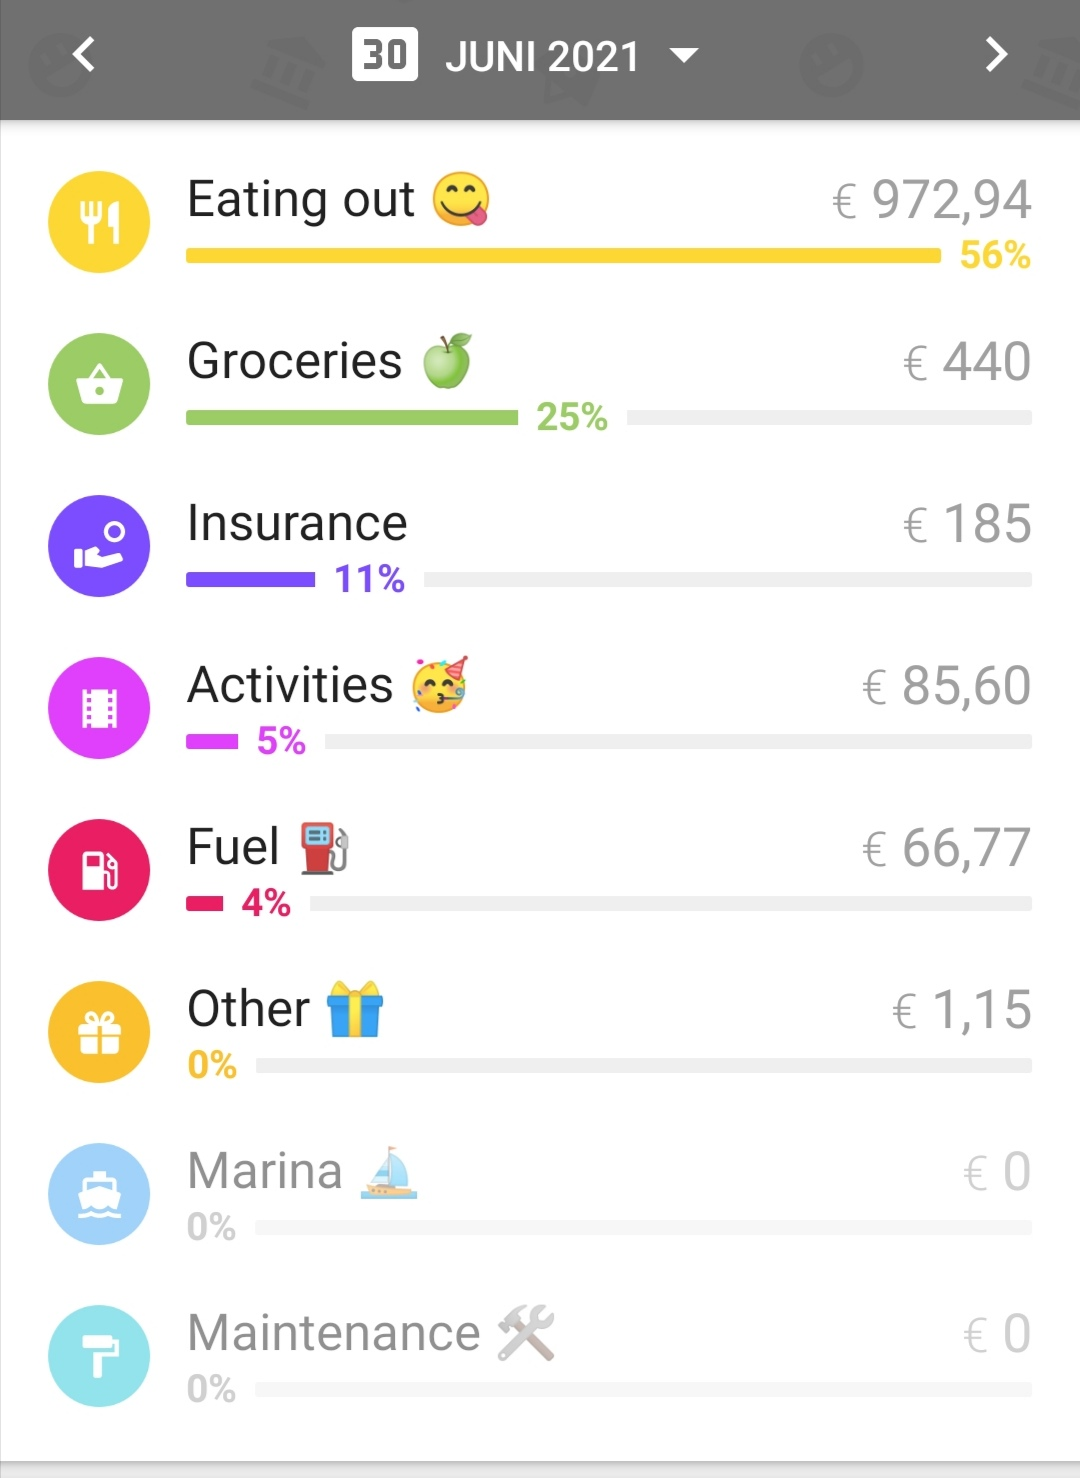 Category break down monthly expenses